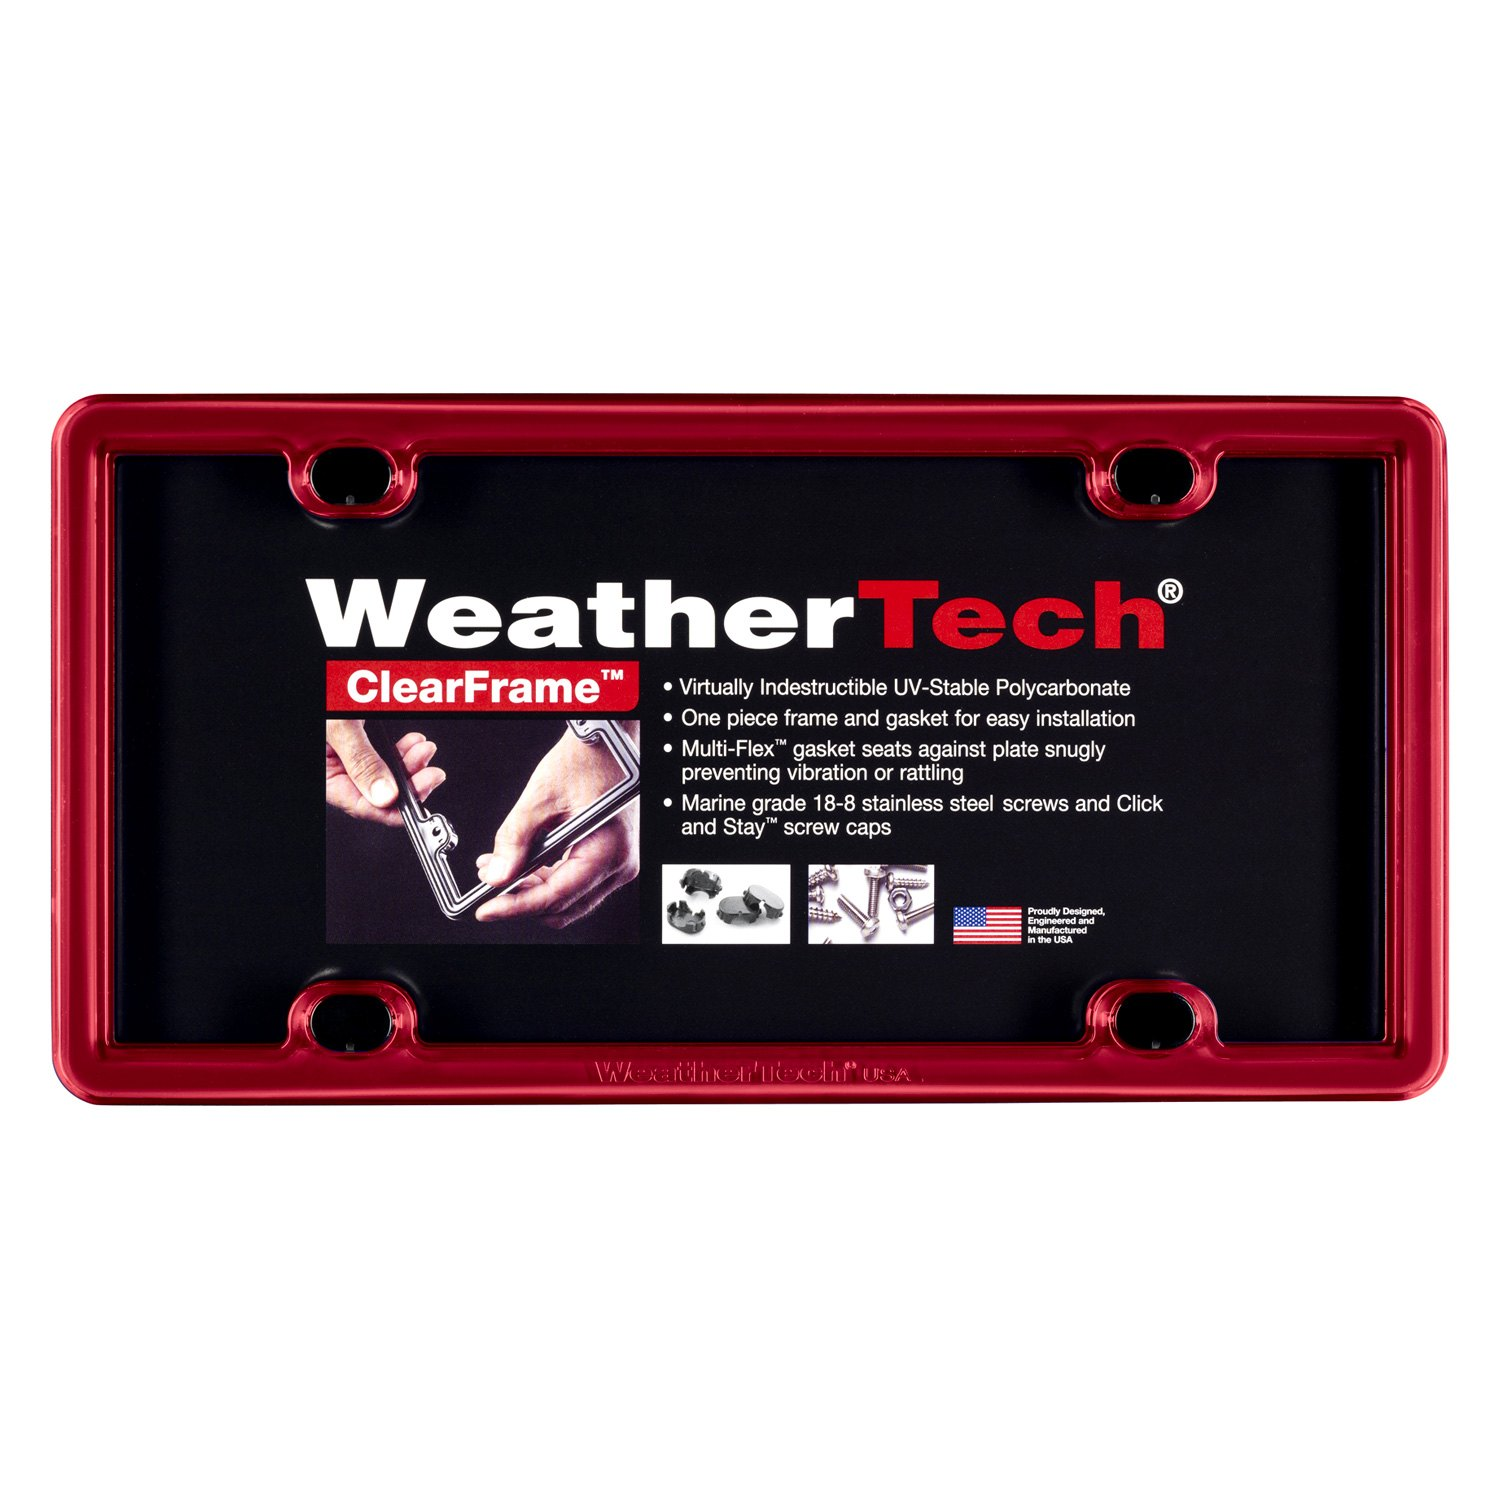 WeatherTech® 8ALPCF1 - ClearFrame™ Red License Plate Frame